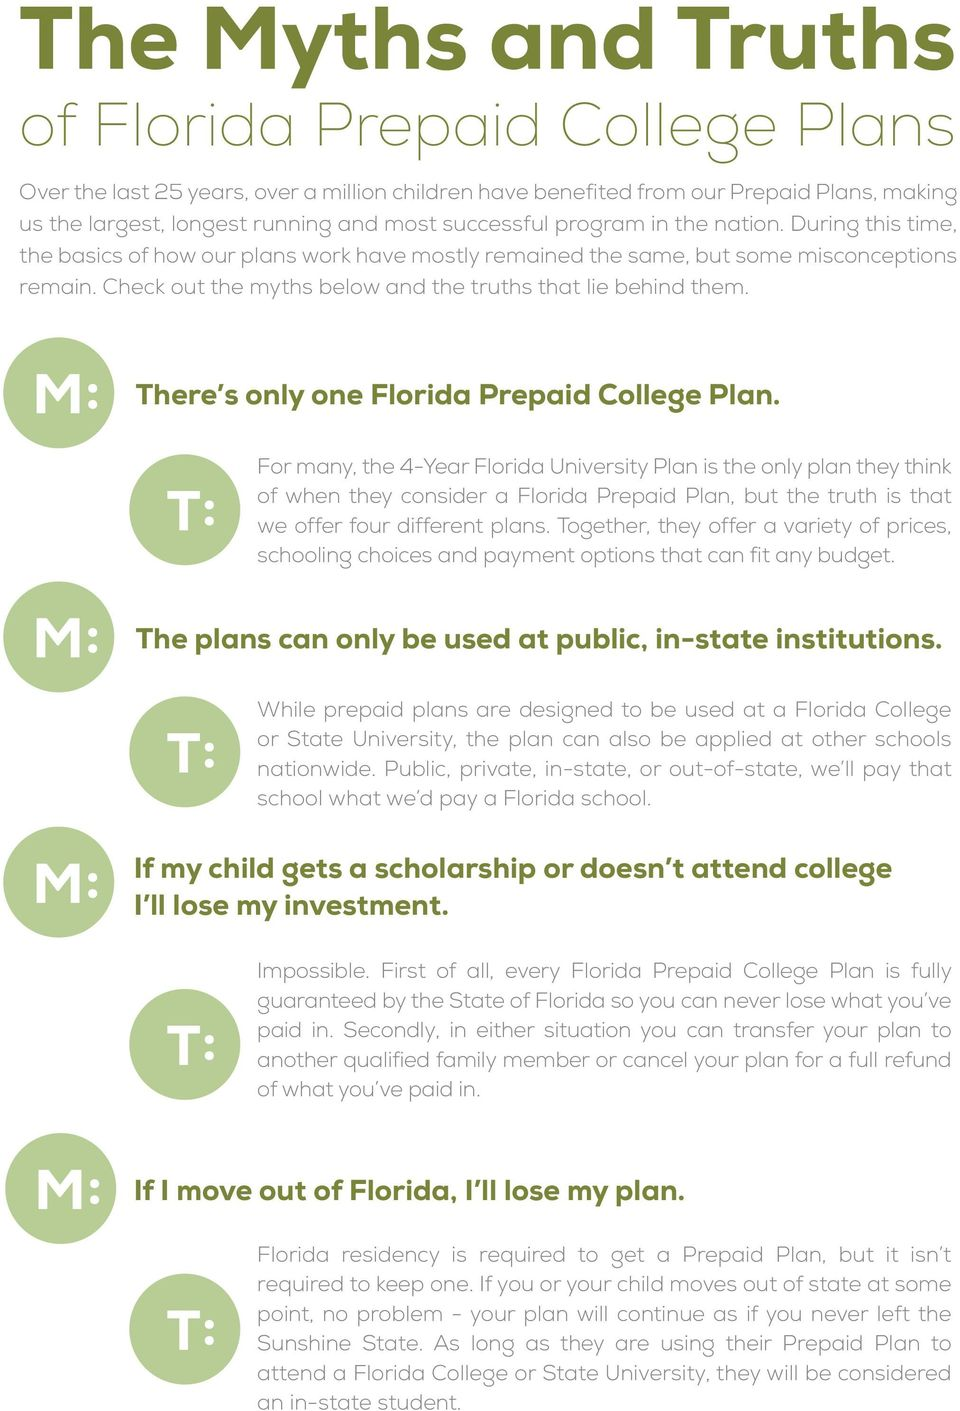 M: There s only one Florida Prepaid College Plan.